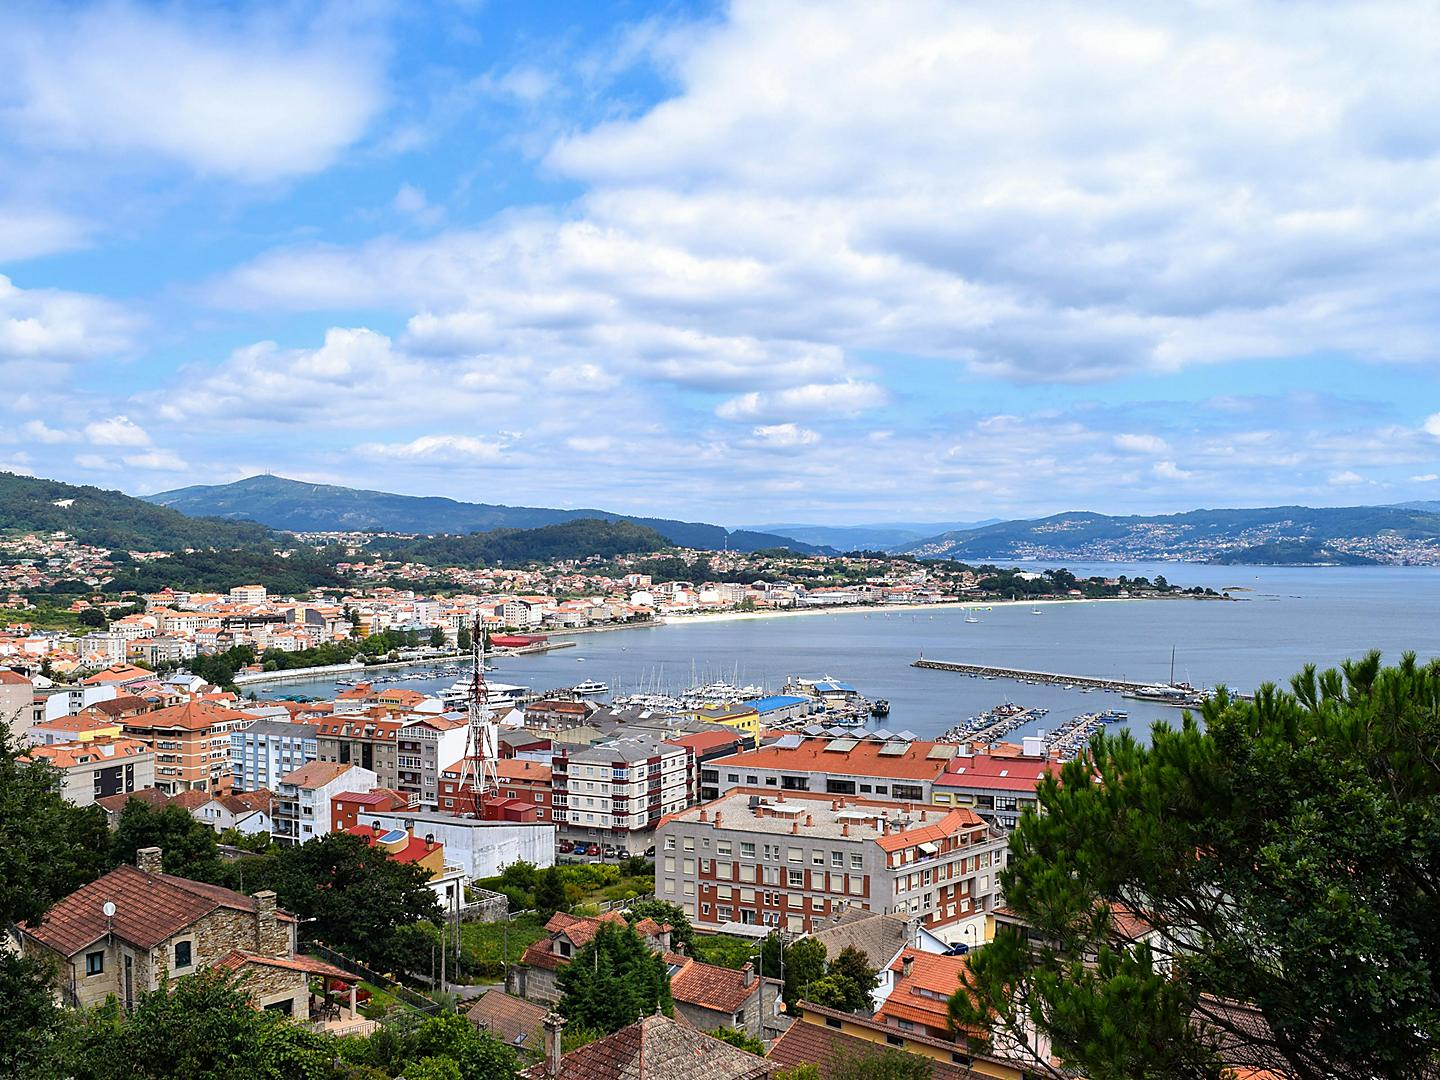 Vigo, Spain, Hilltop city view